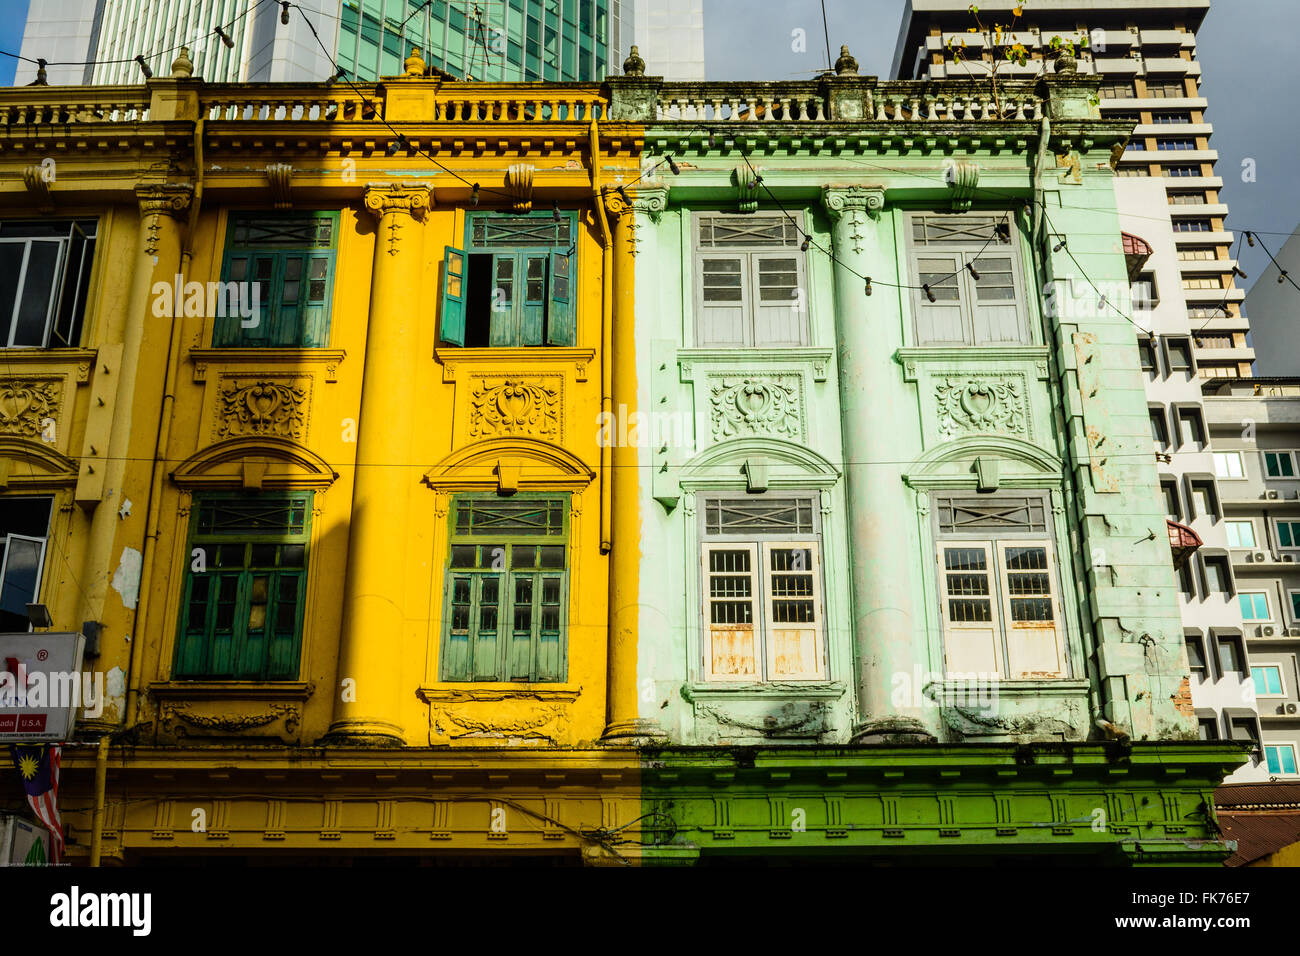 Three-storey shophouses with Neo-Classical architecture in Lebuh Ampang, Kuala Lumpur - Stock Image